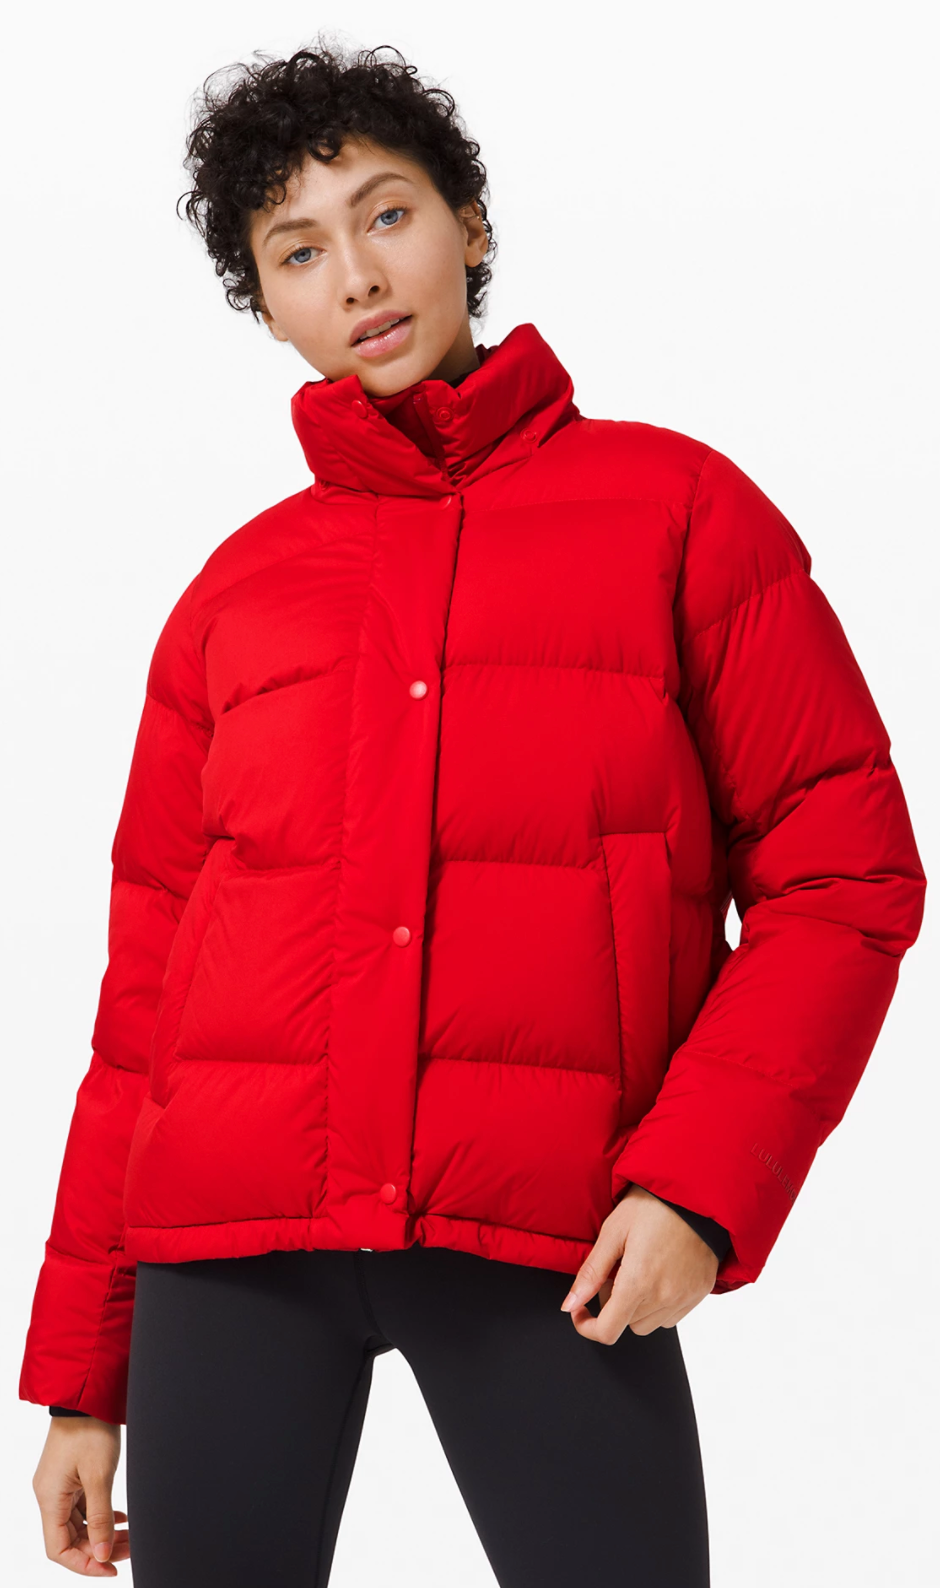 Wunder Puff Jacket in Dark Red (Photo via Lululemon Athletica)